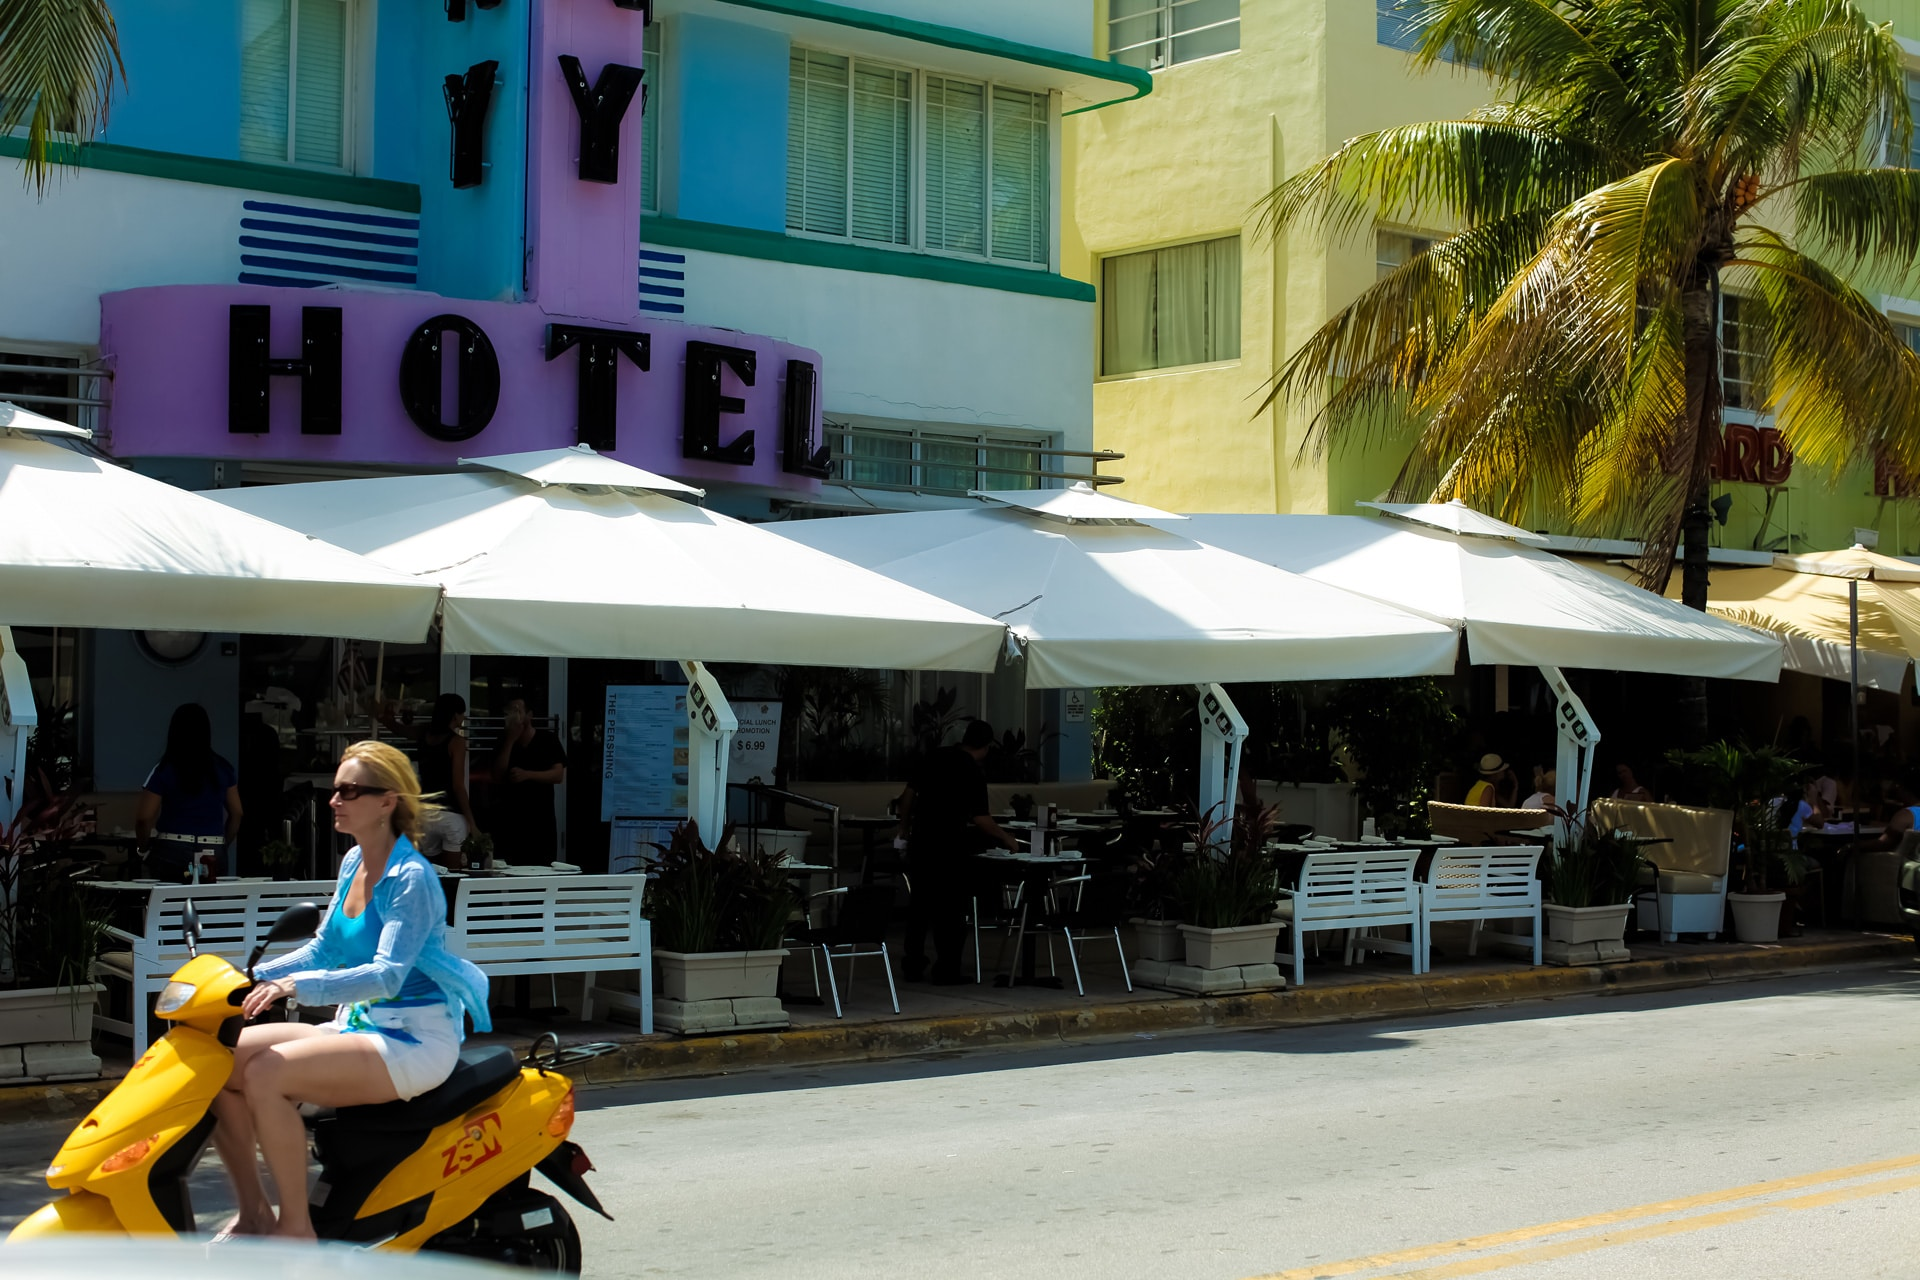 south-beach-miami-street